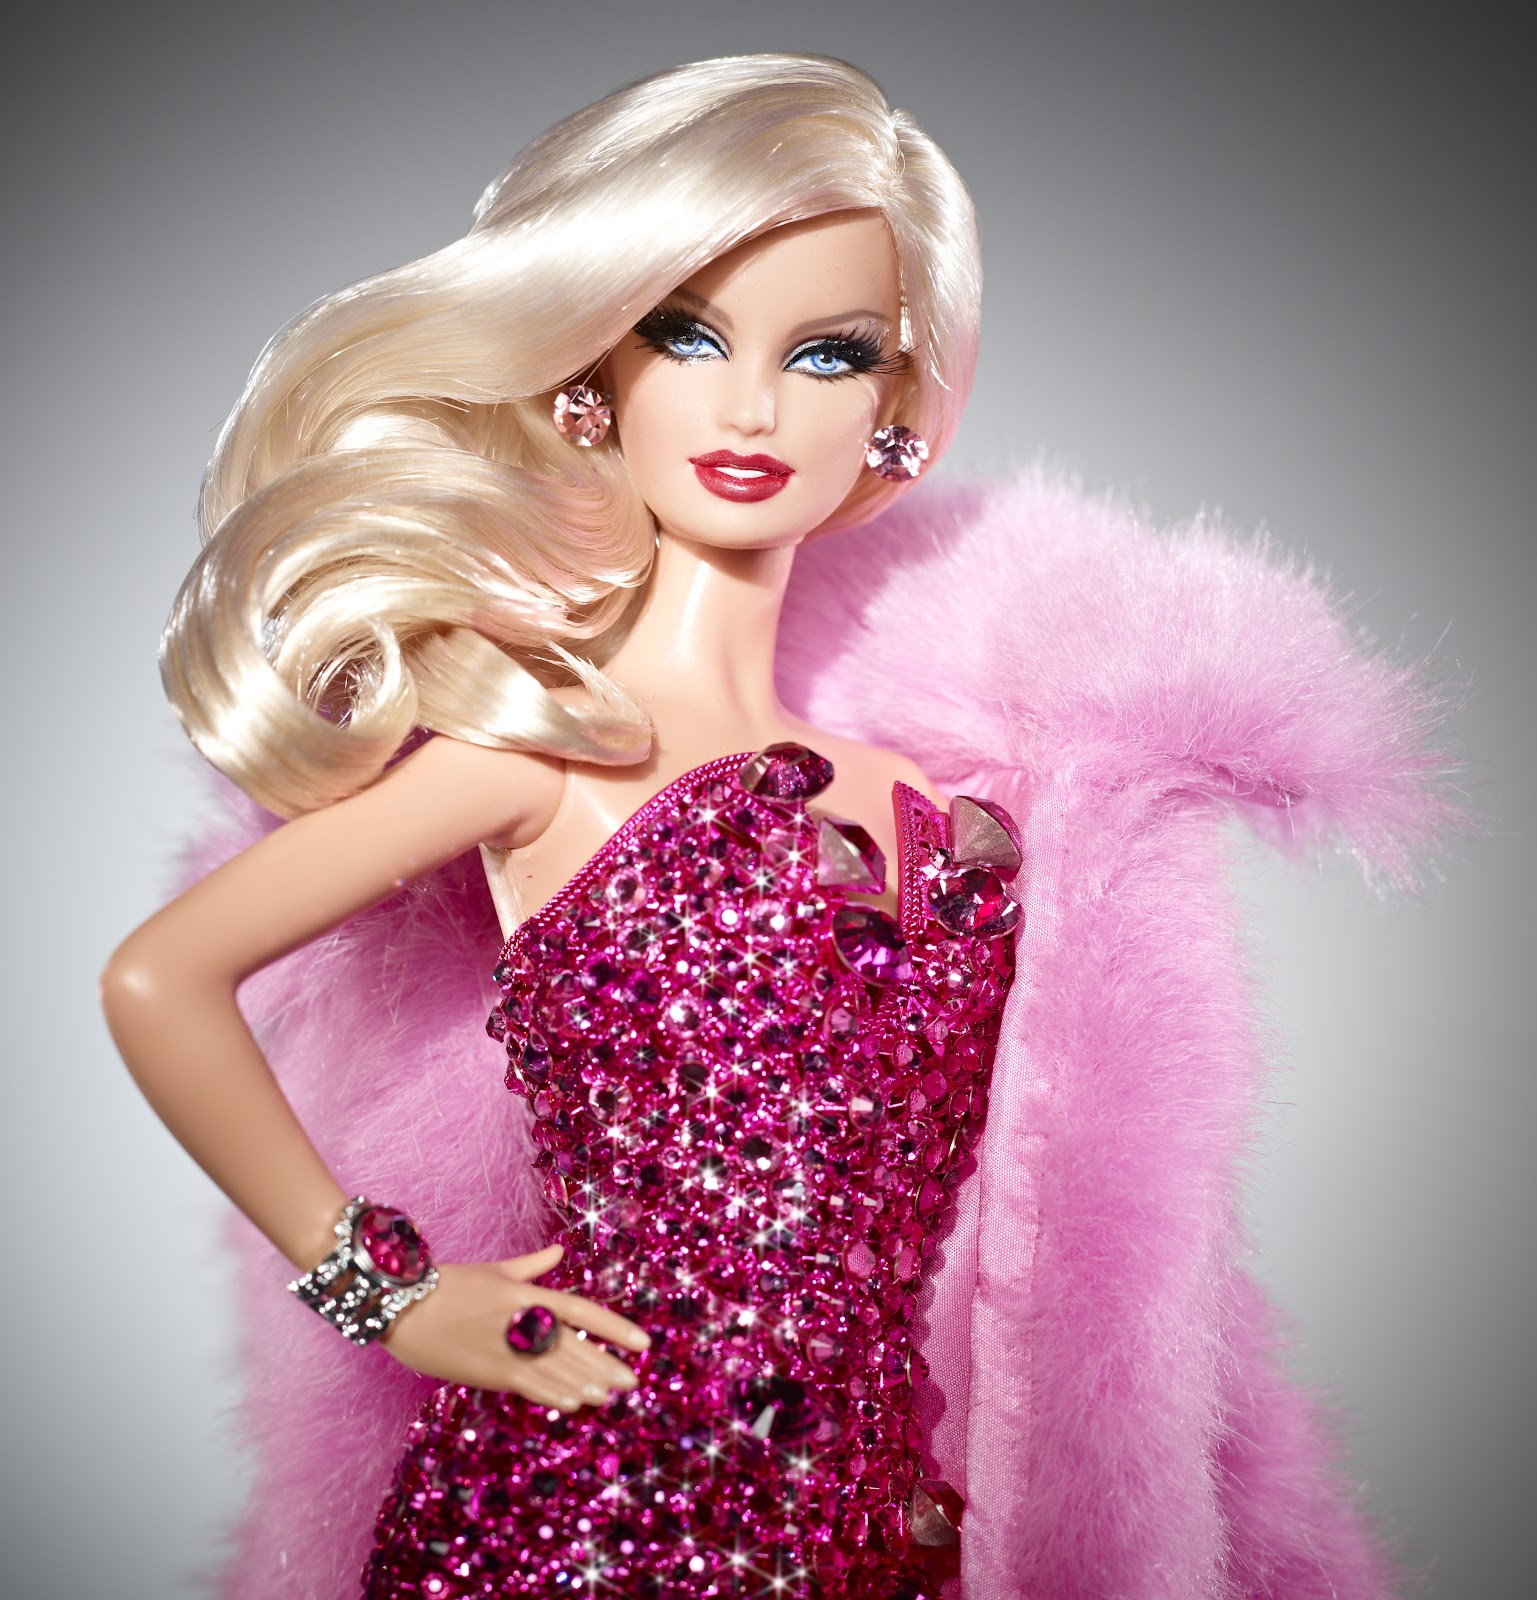 Barbie Wallpaper Tumblr: THE FASHION DOLL REVIEW: Pink Diamond Barbie By The Blonds